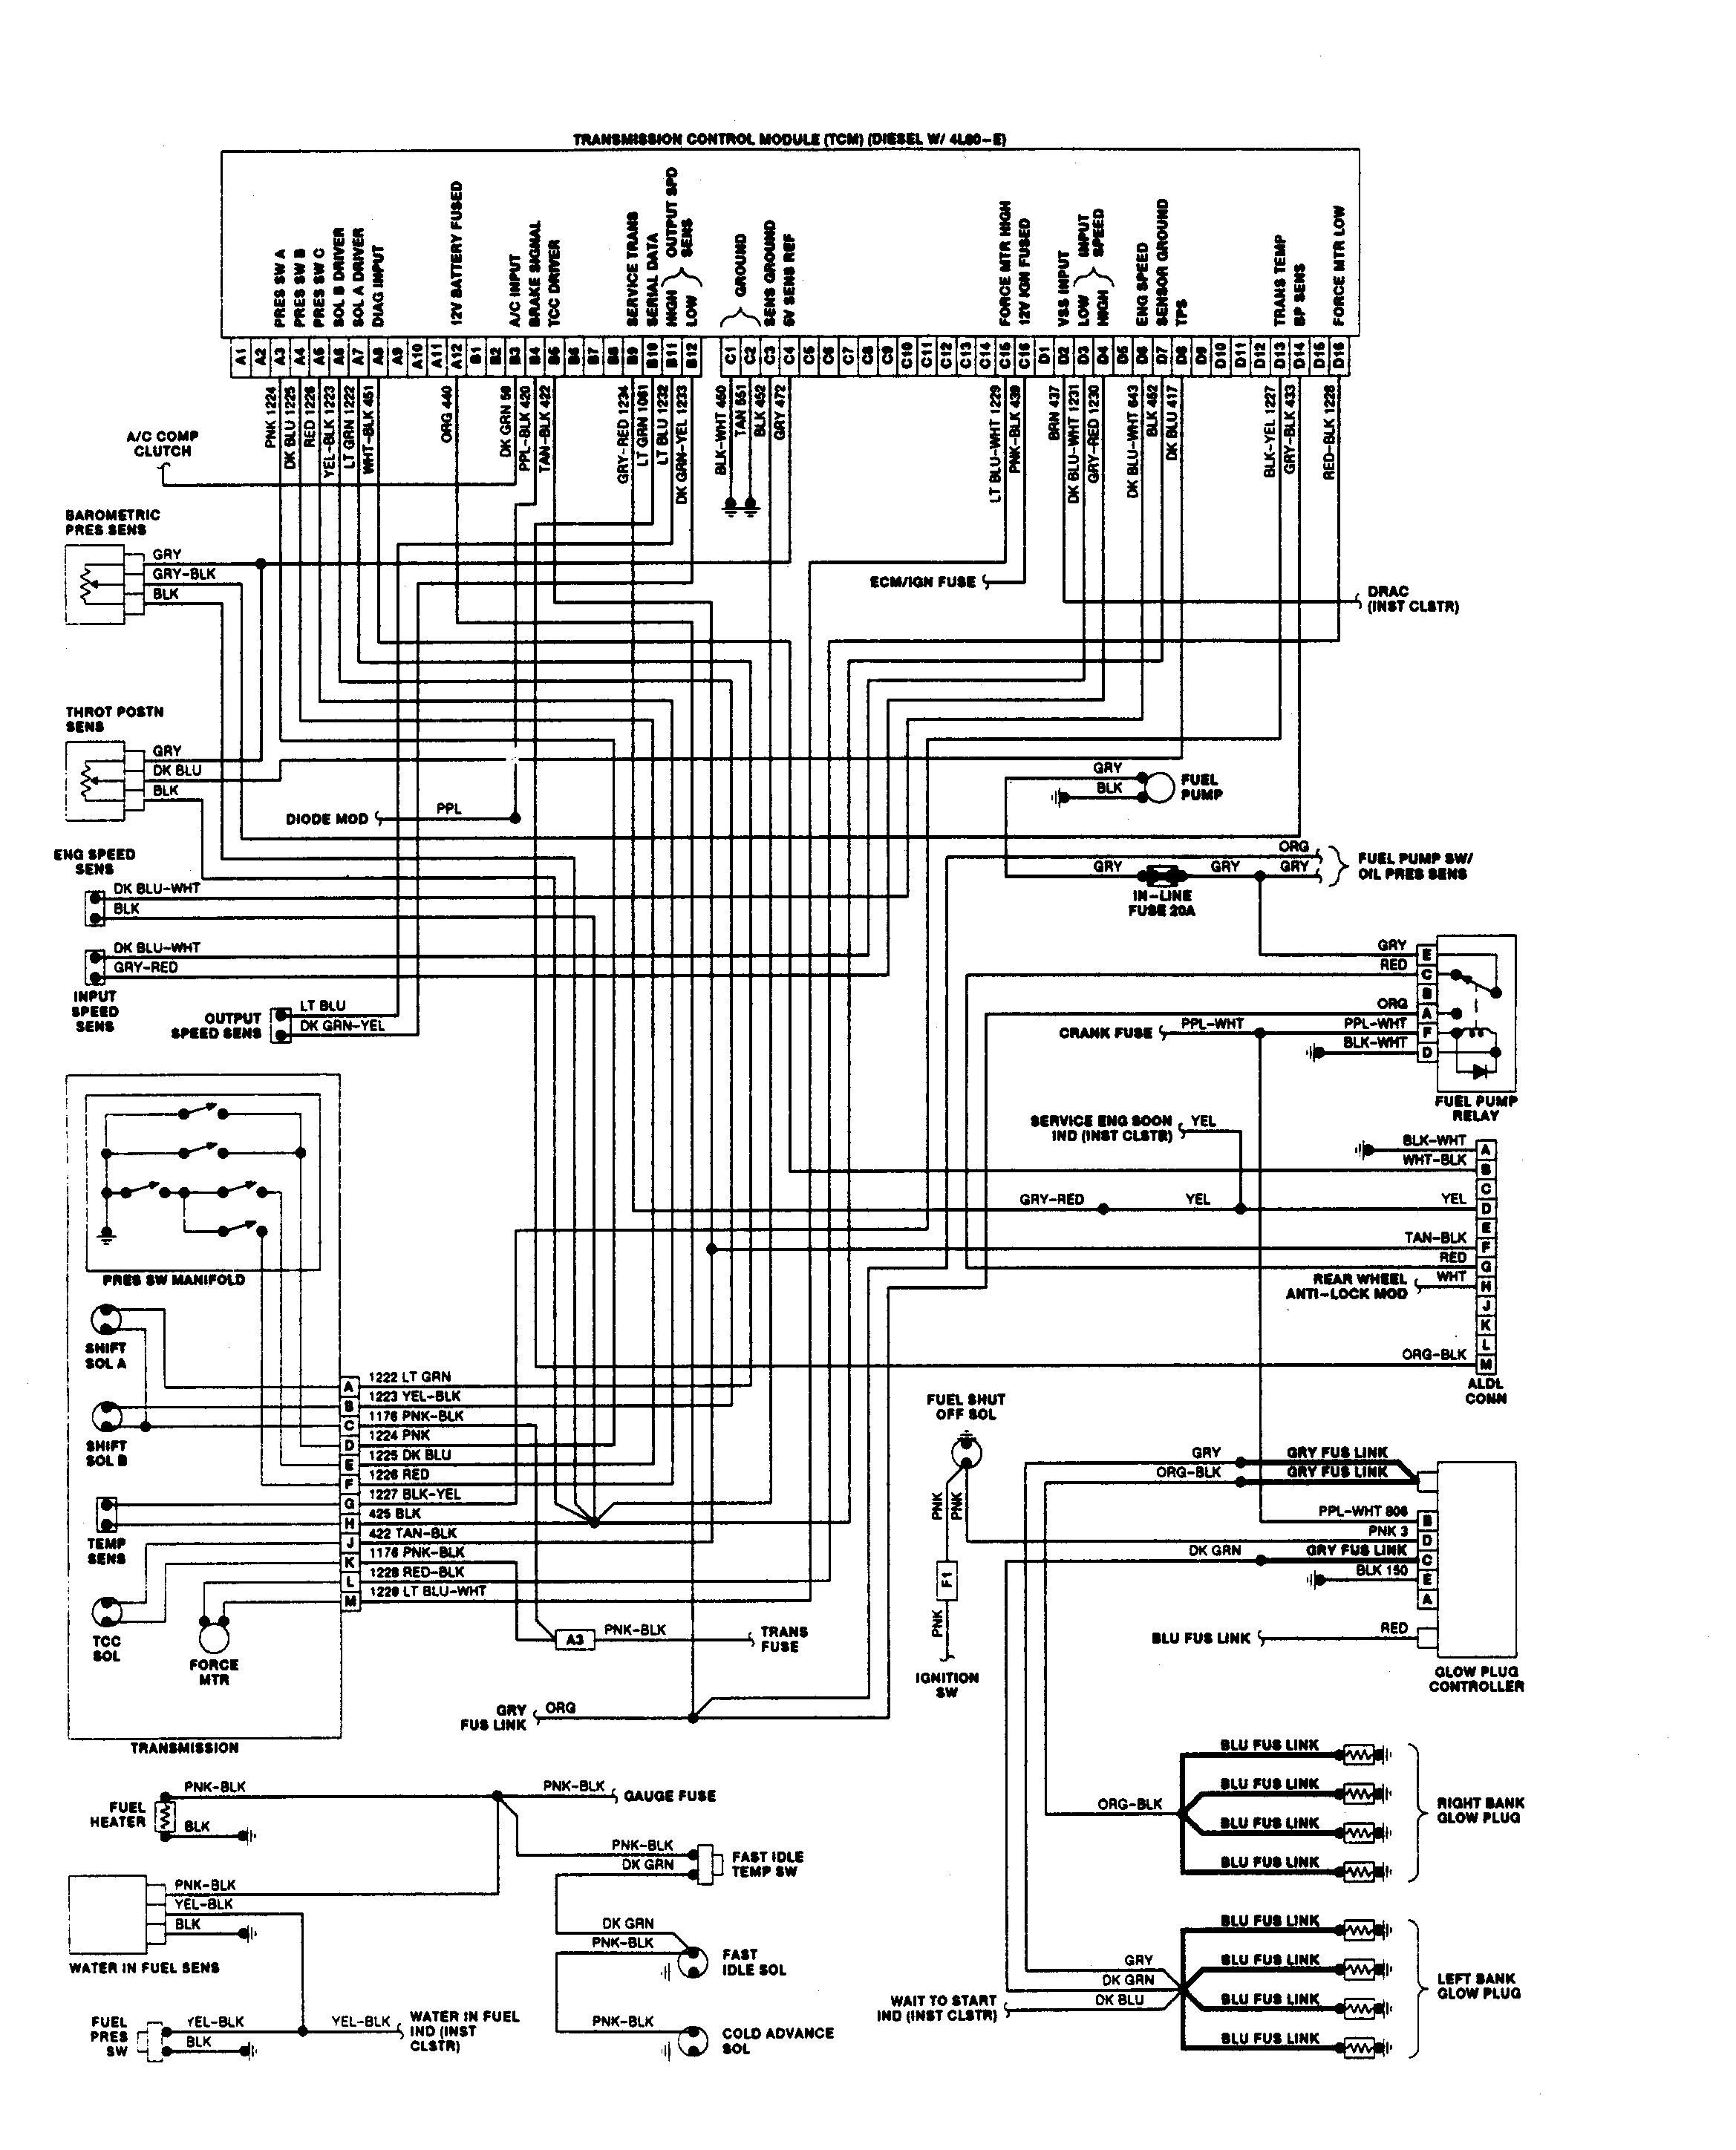 1991 chevy p30 wiring diagrams chevrolet chevy diagram rv motorhome [ 2338 x 2896 Pixel ]